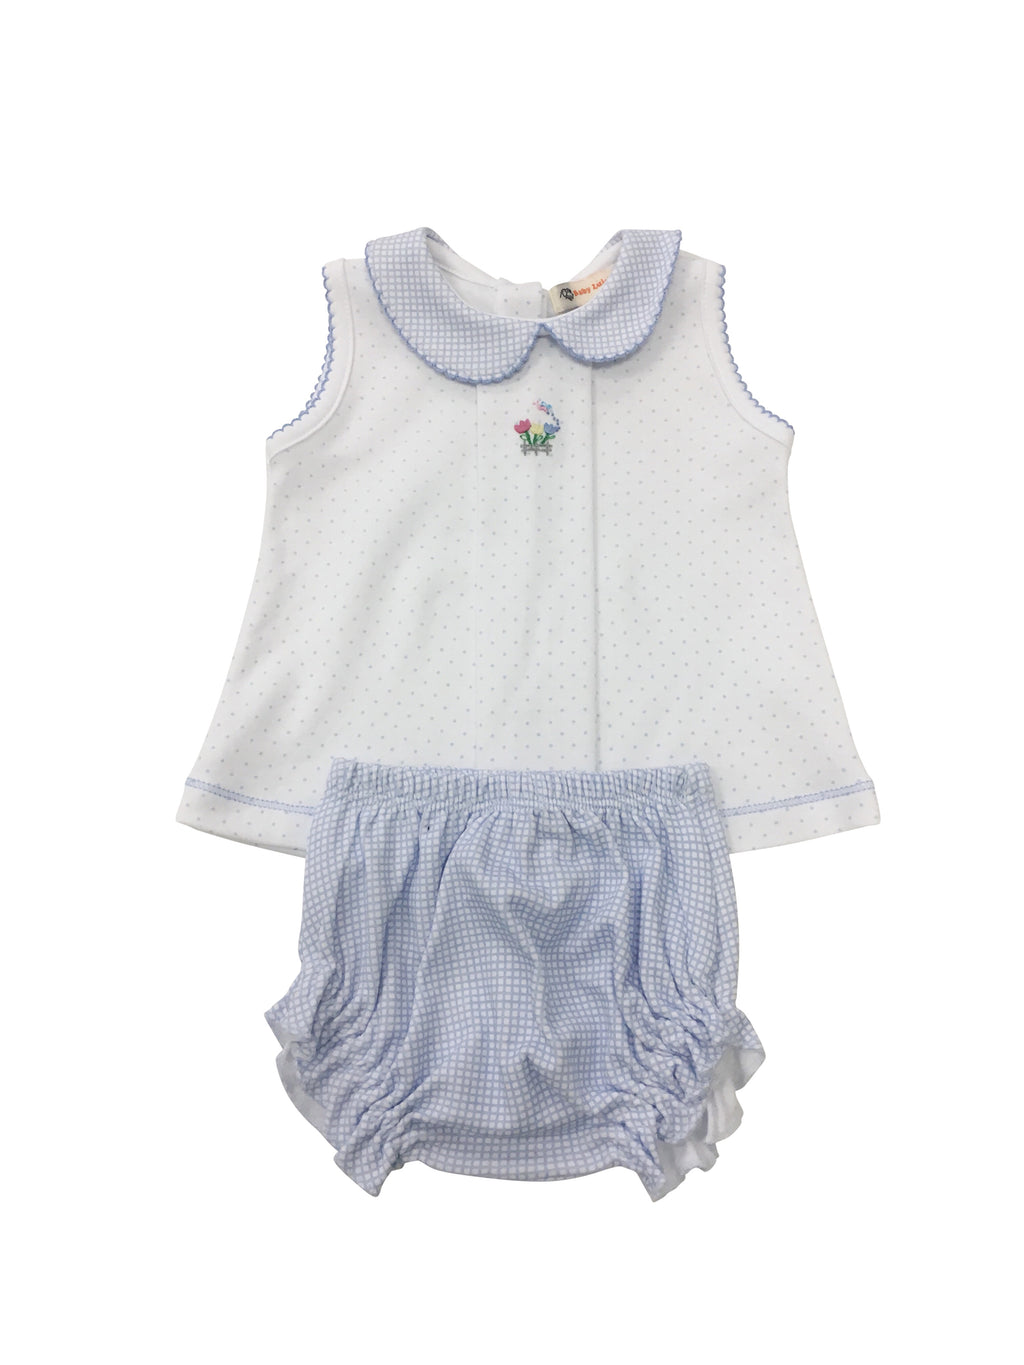 Blue Dot with Blue Gingham Knit Bloomer Set - Flowers - Born Childrens Boutique